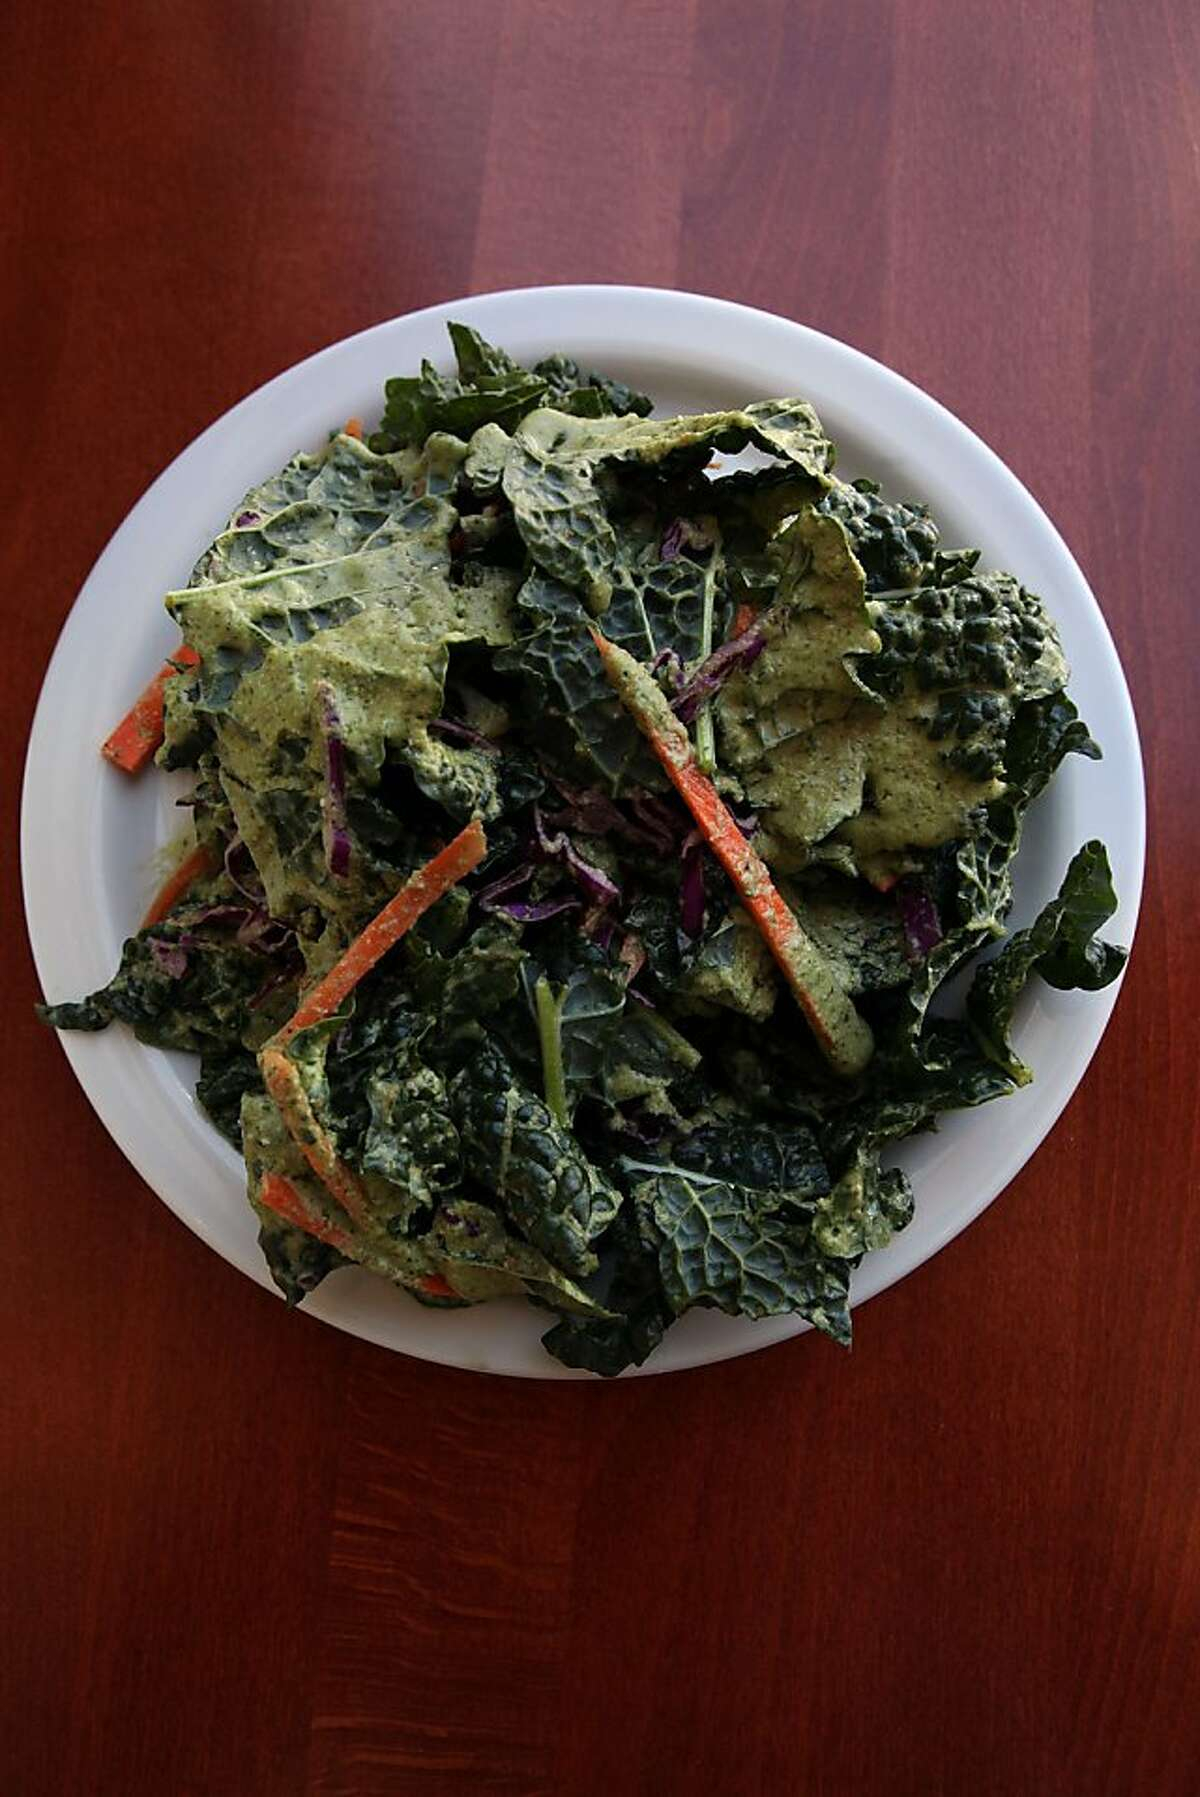 Living Green Goddess salad-- dino kale, carrot, sesame seeds, red cabbage with green goddess dressing-- from Source in San Francisco, Calif., on Friday, May 6.